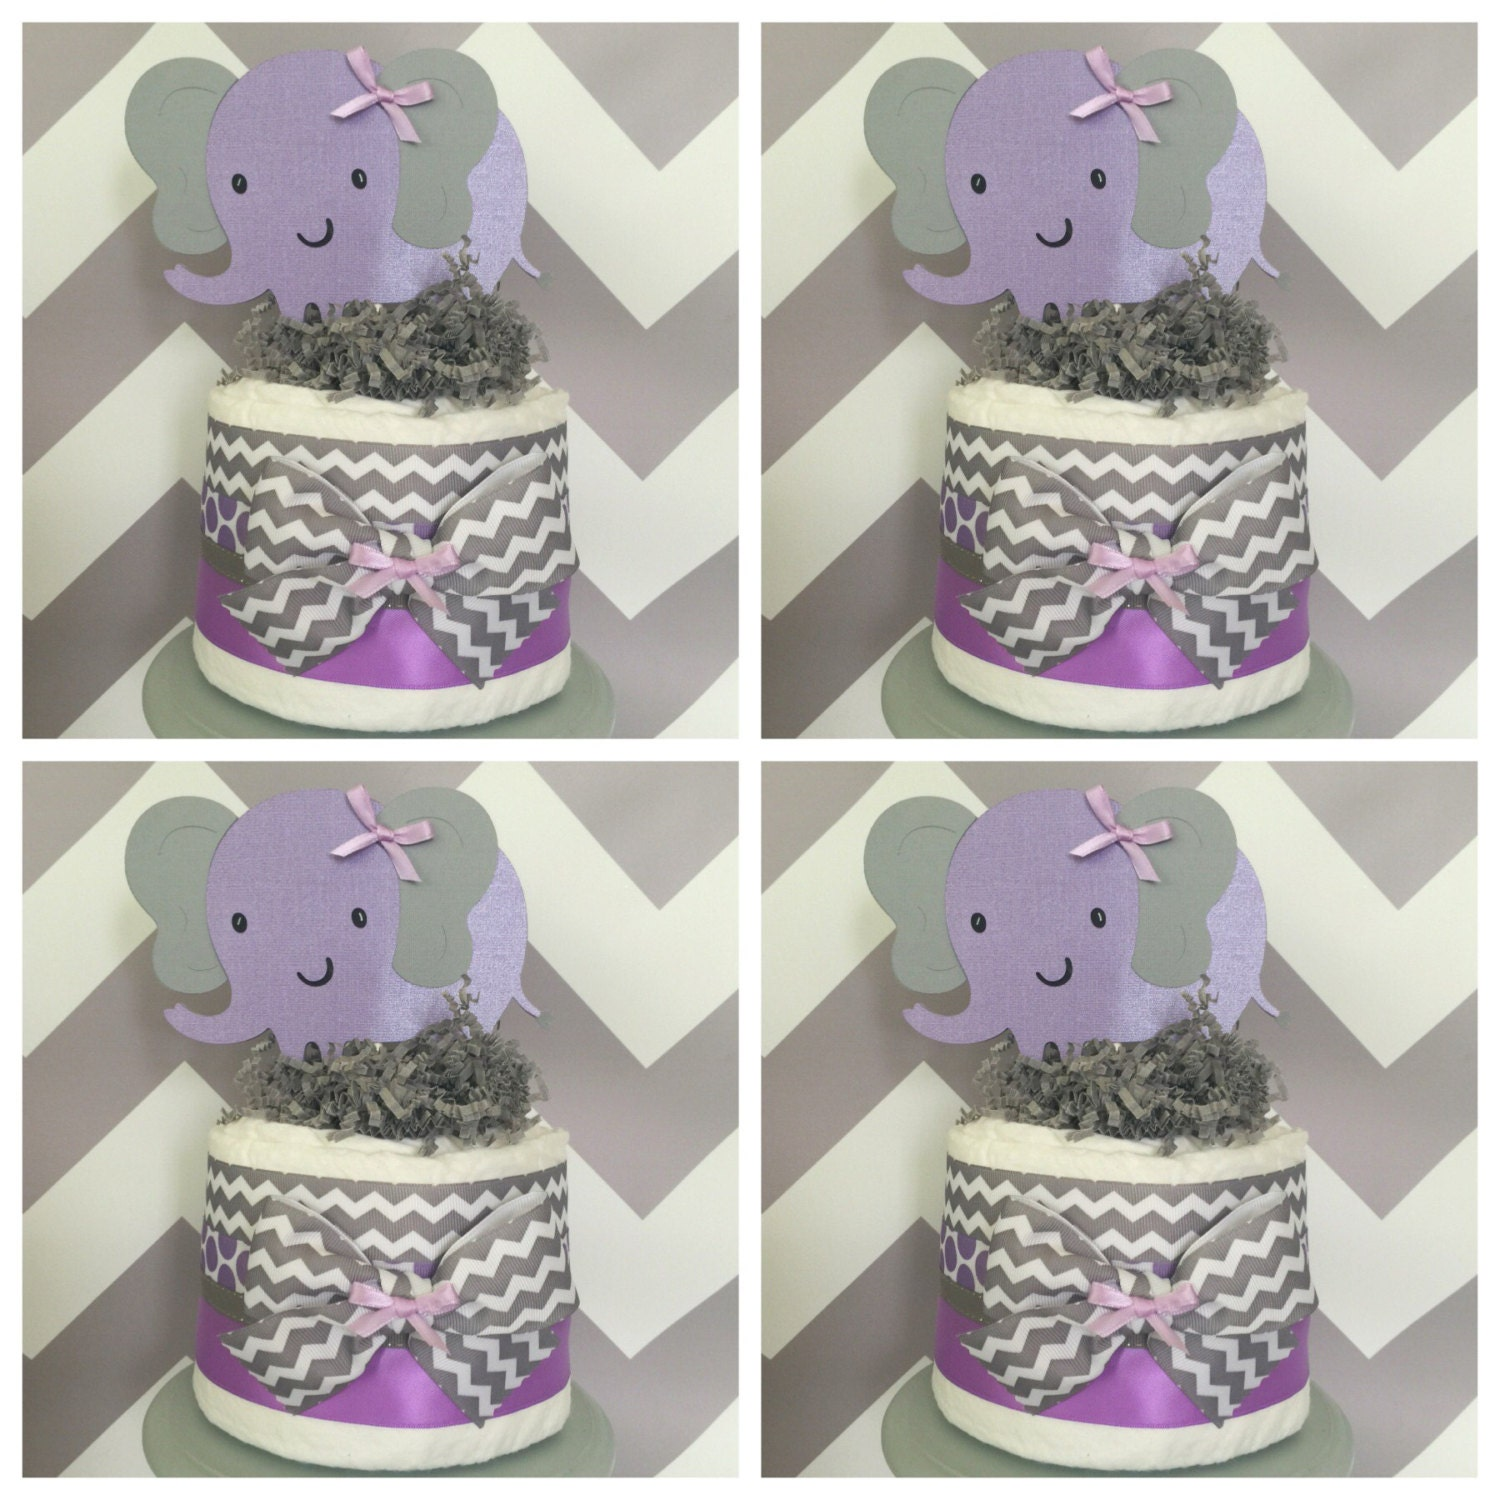 Lavender Baby Shower Decorations Elephant Chevron Mini Diaper Cakes In Lavender And Gray Elephant